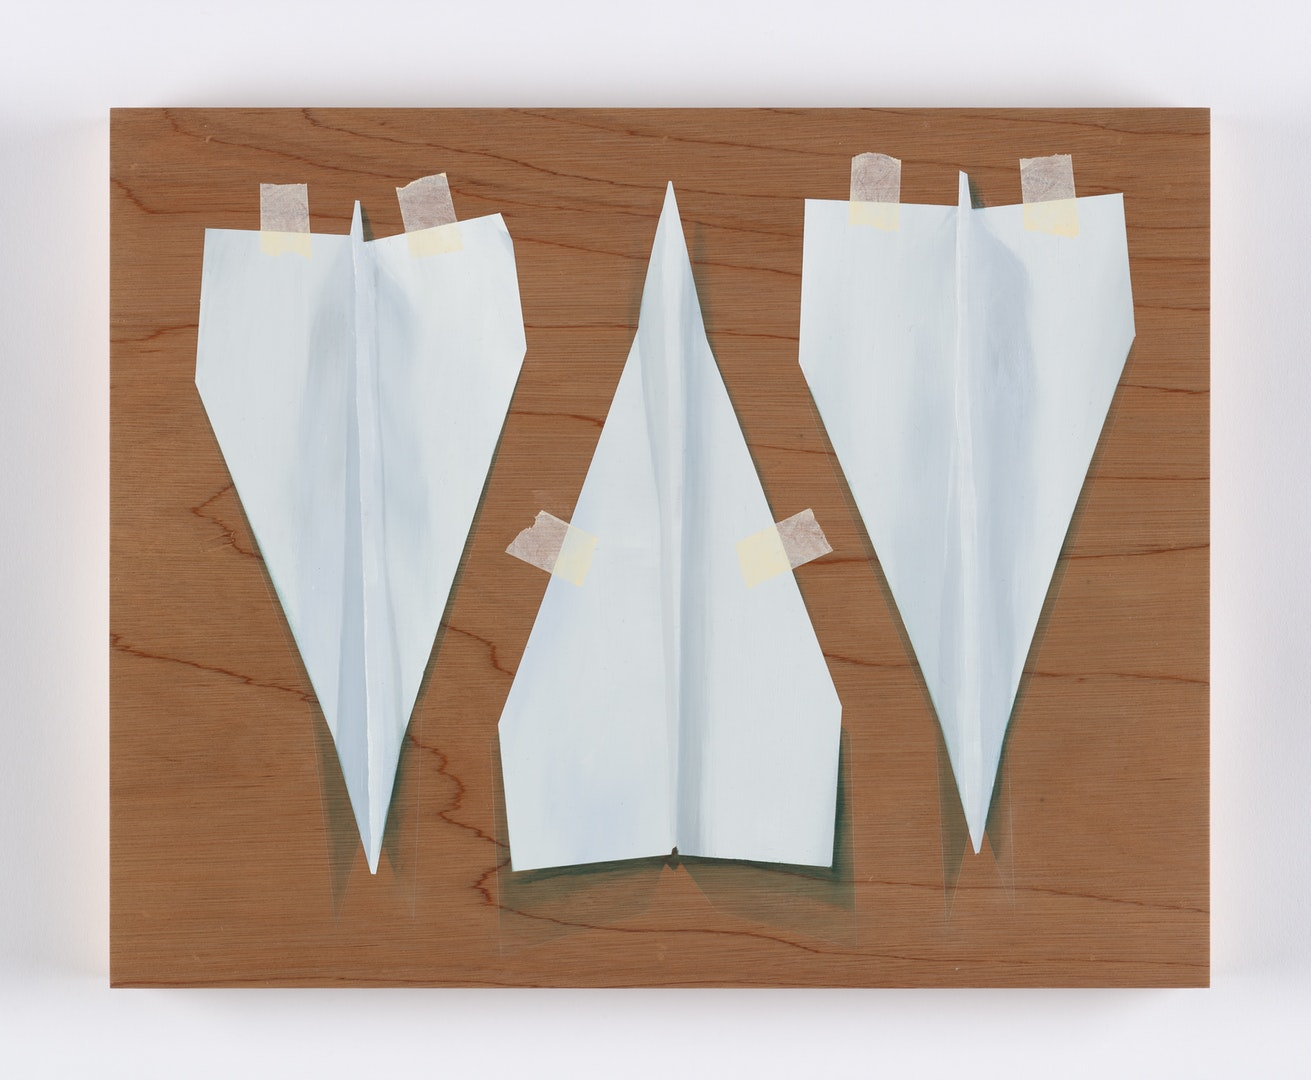 Alastair Gordon  Three Paper Darts  Oil on marine ply, 40 x 50 cm  http://www.alastairjohngordon.com